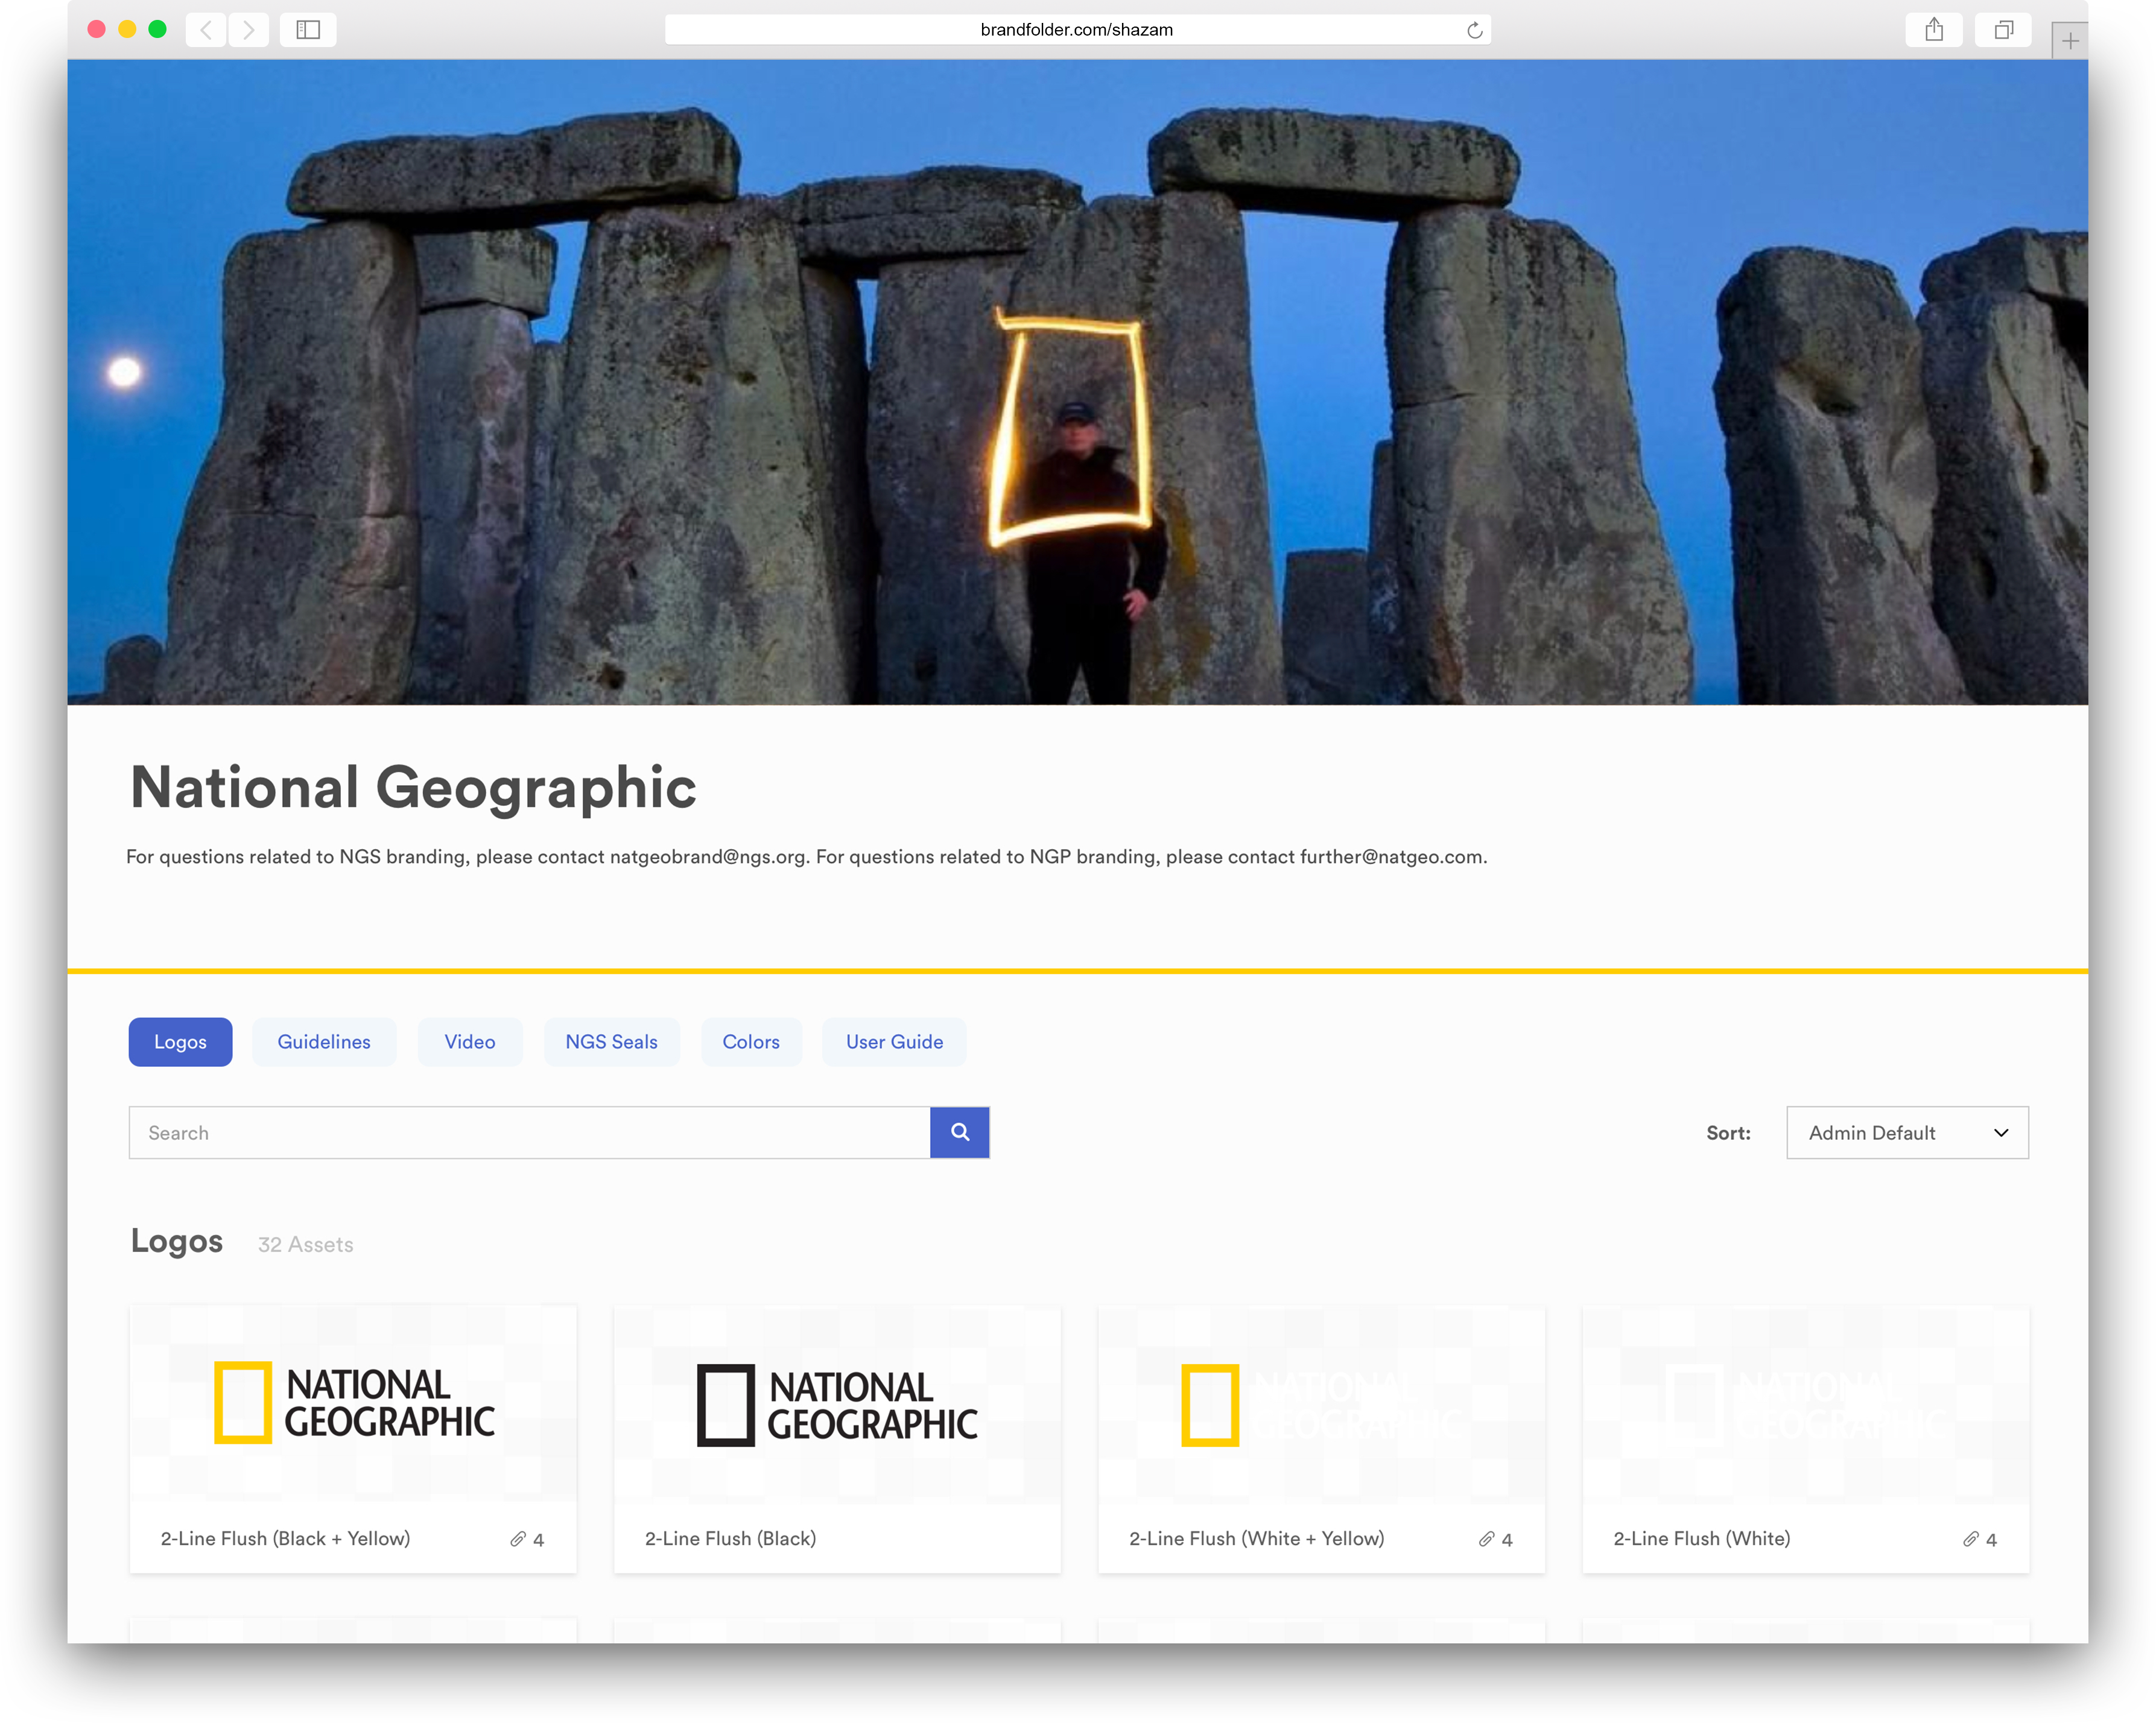 National Geographic Brandfolder example